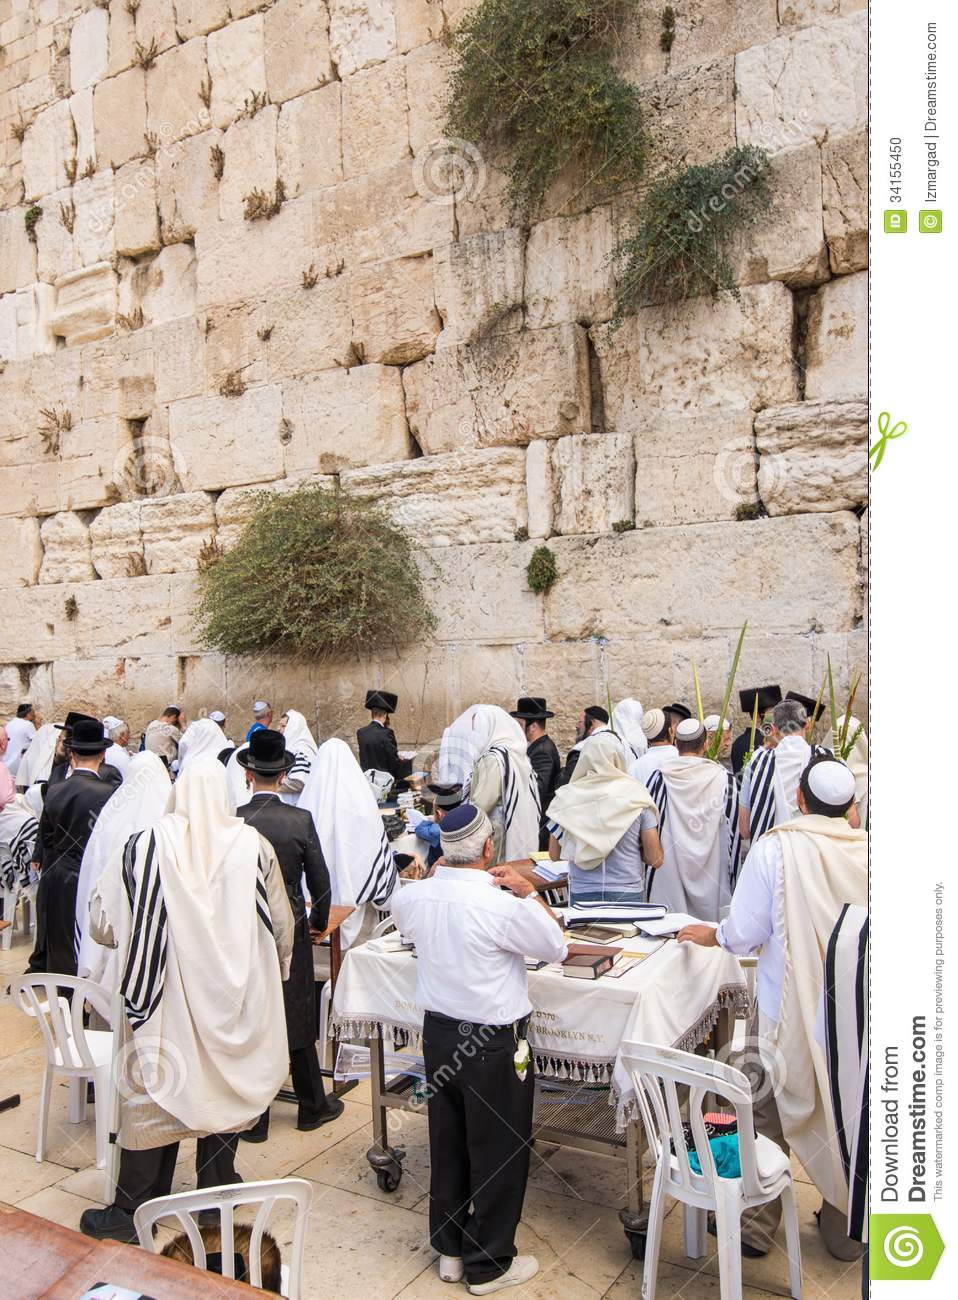 ... Wailing Wall in order to celebrate the Feast of Tabernacles (sukkot